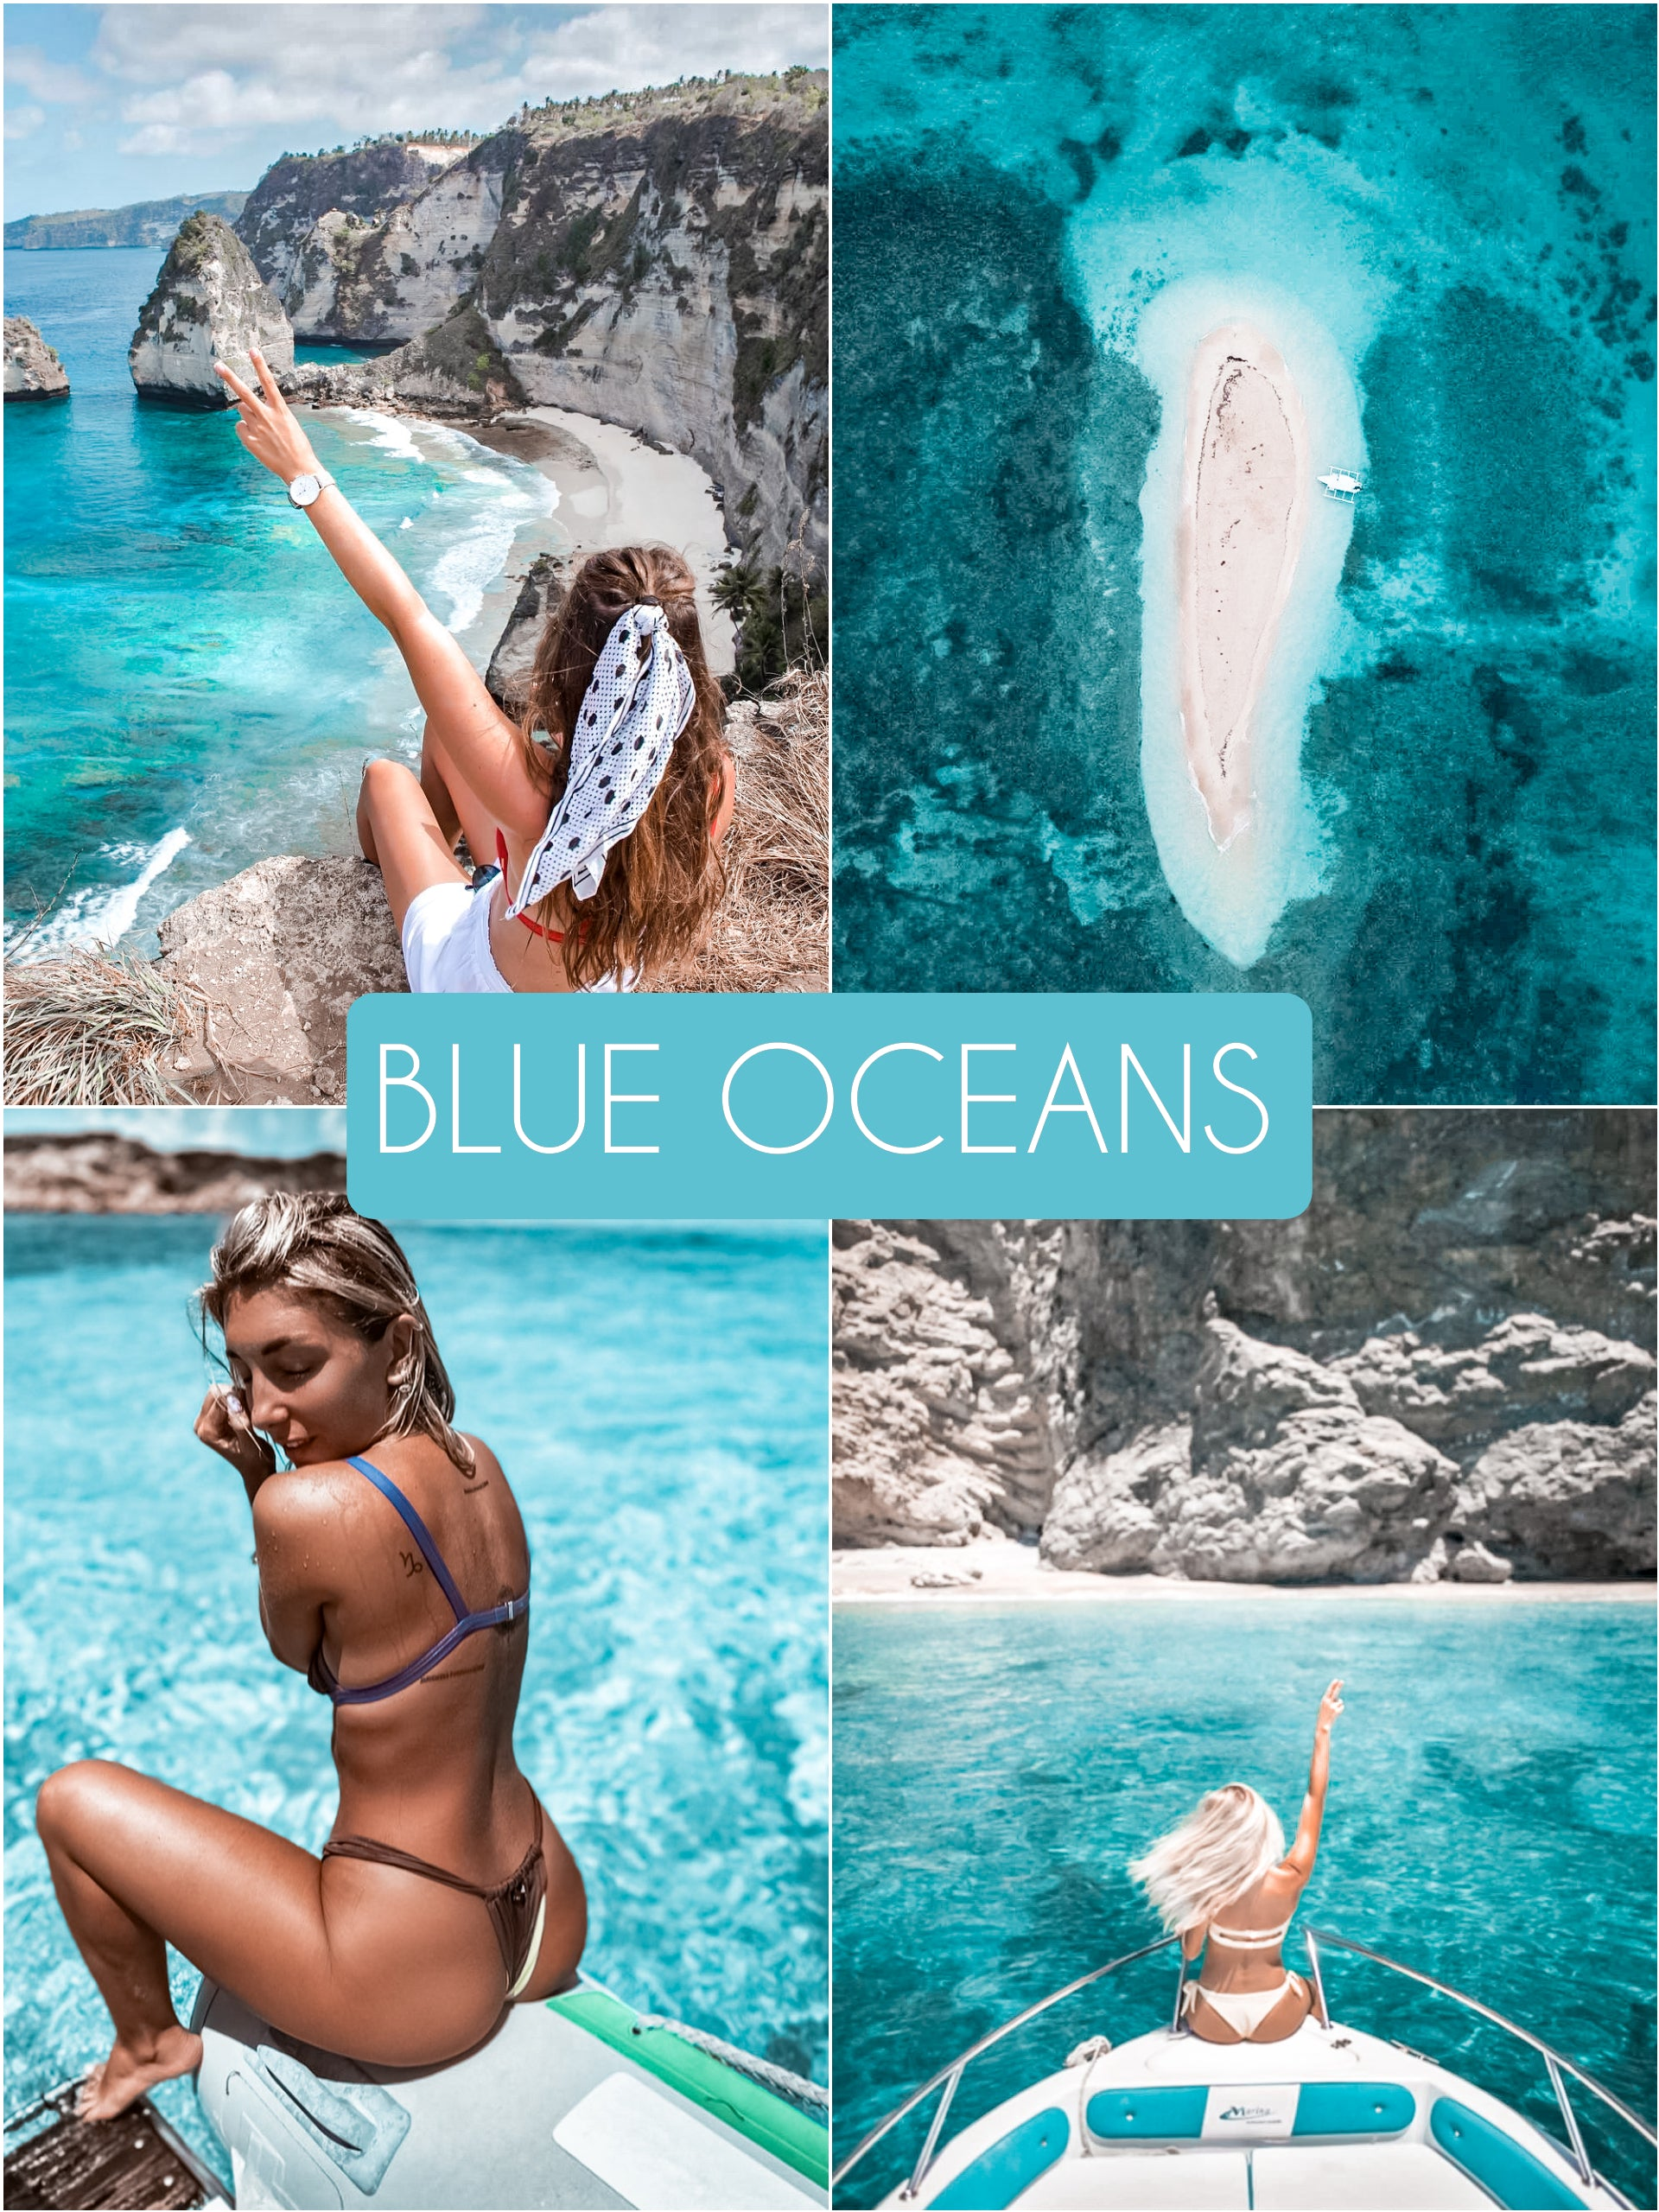 Blue Oceans Collection - The Dreamy Photographer. One Click Filter Presets